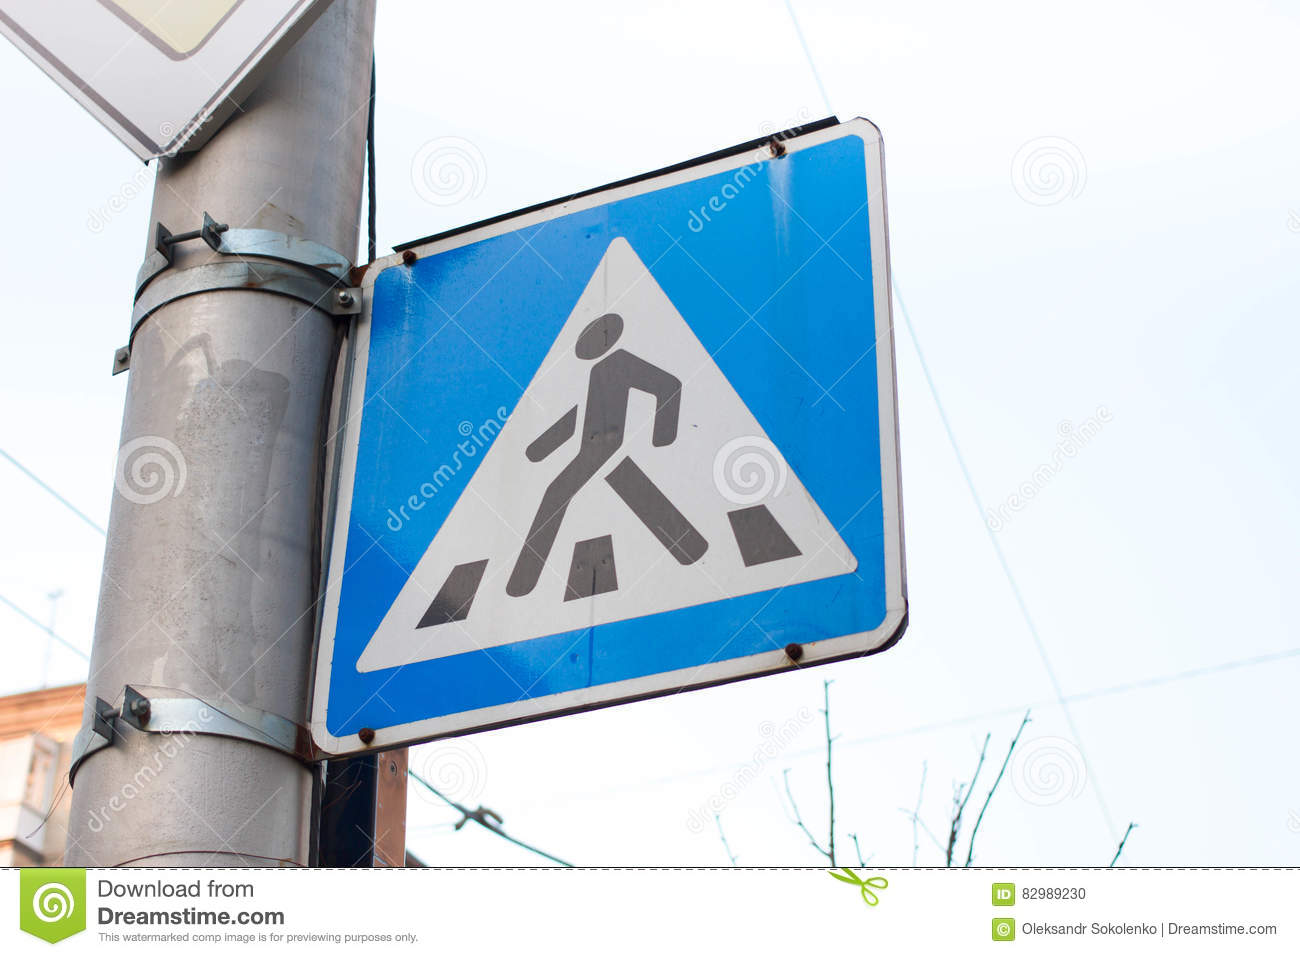 Triangular Pedestrian Crossing Sign Blue Symbol For Cars Stock